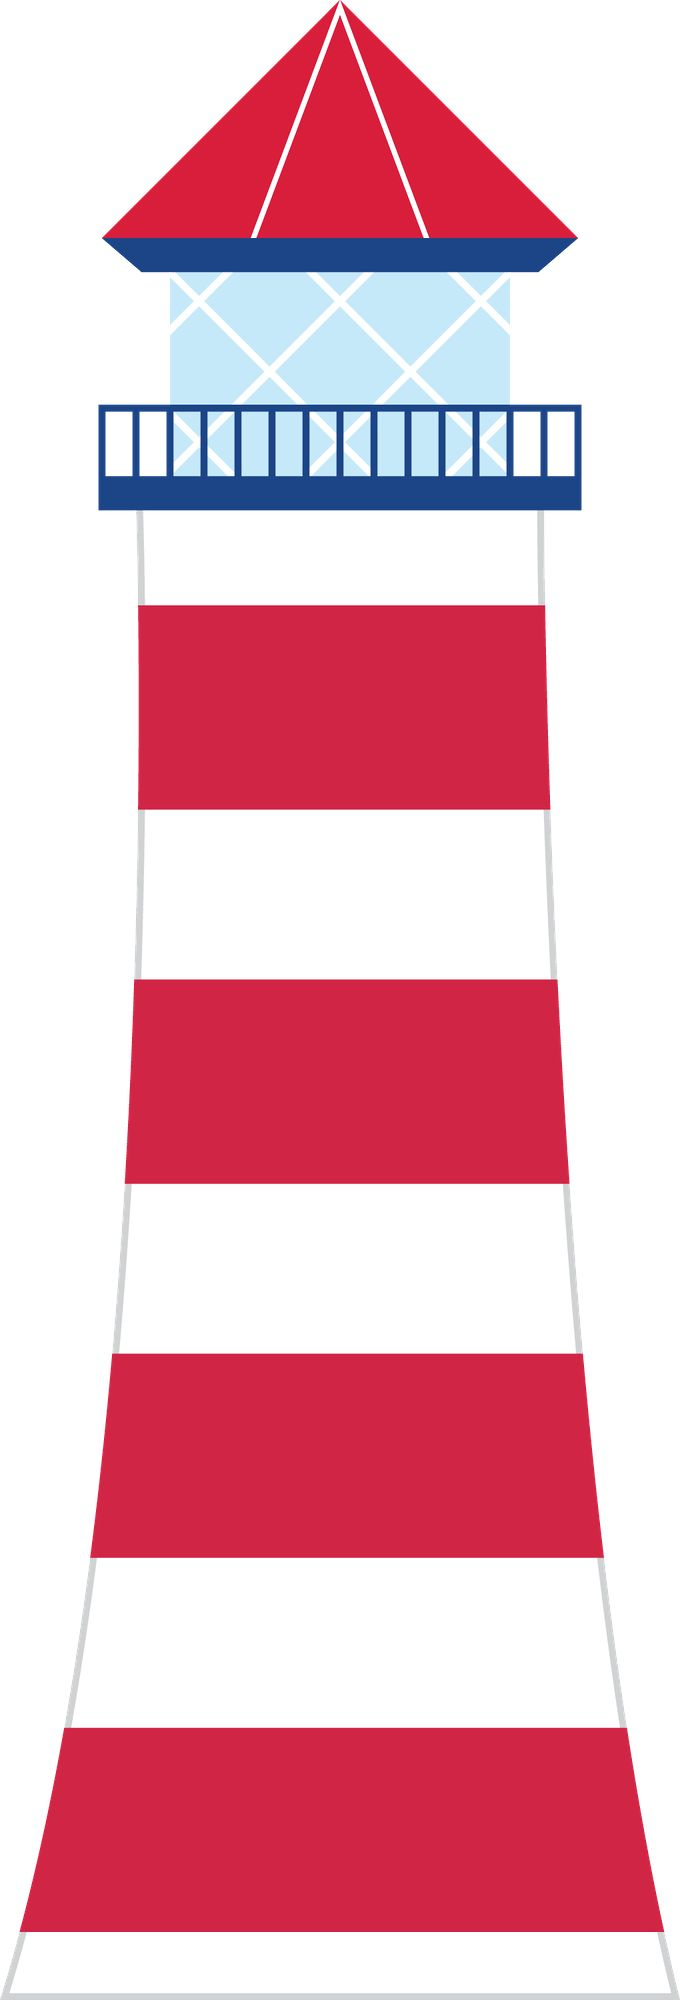 Lighthouse clipart #6, Download drawings